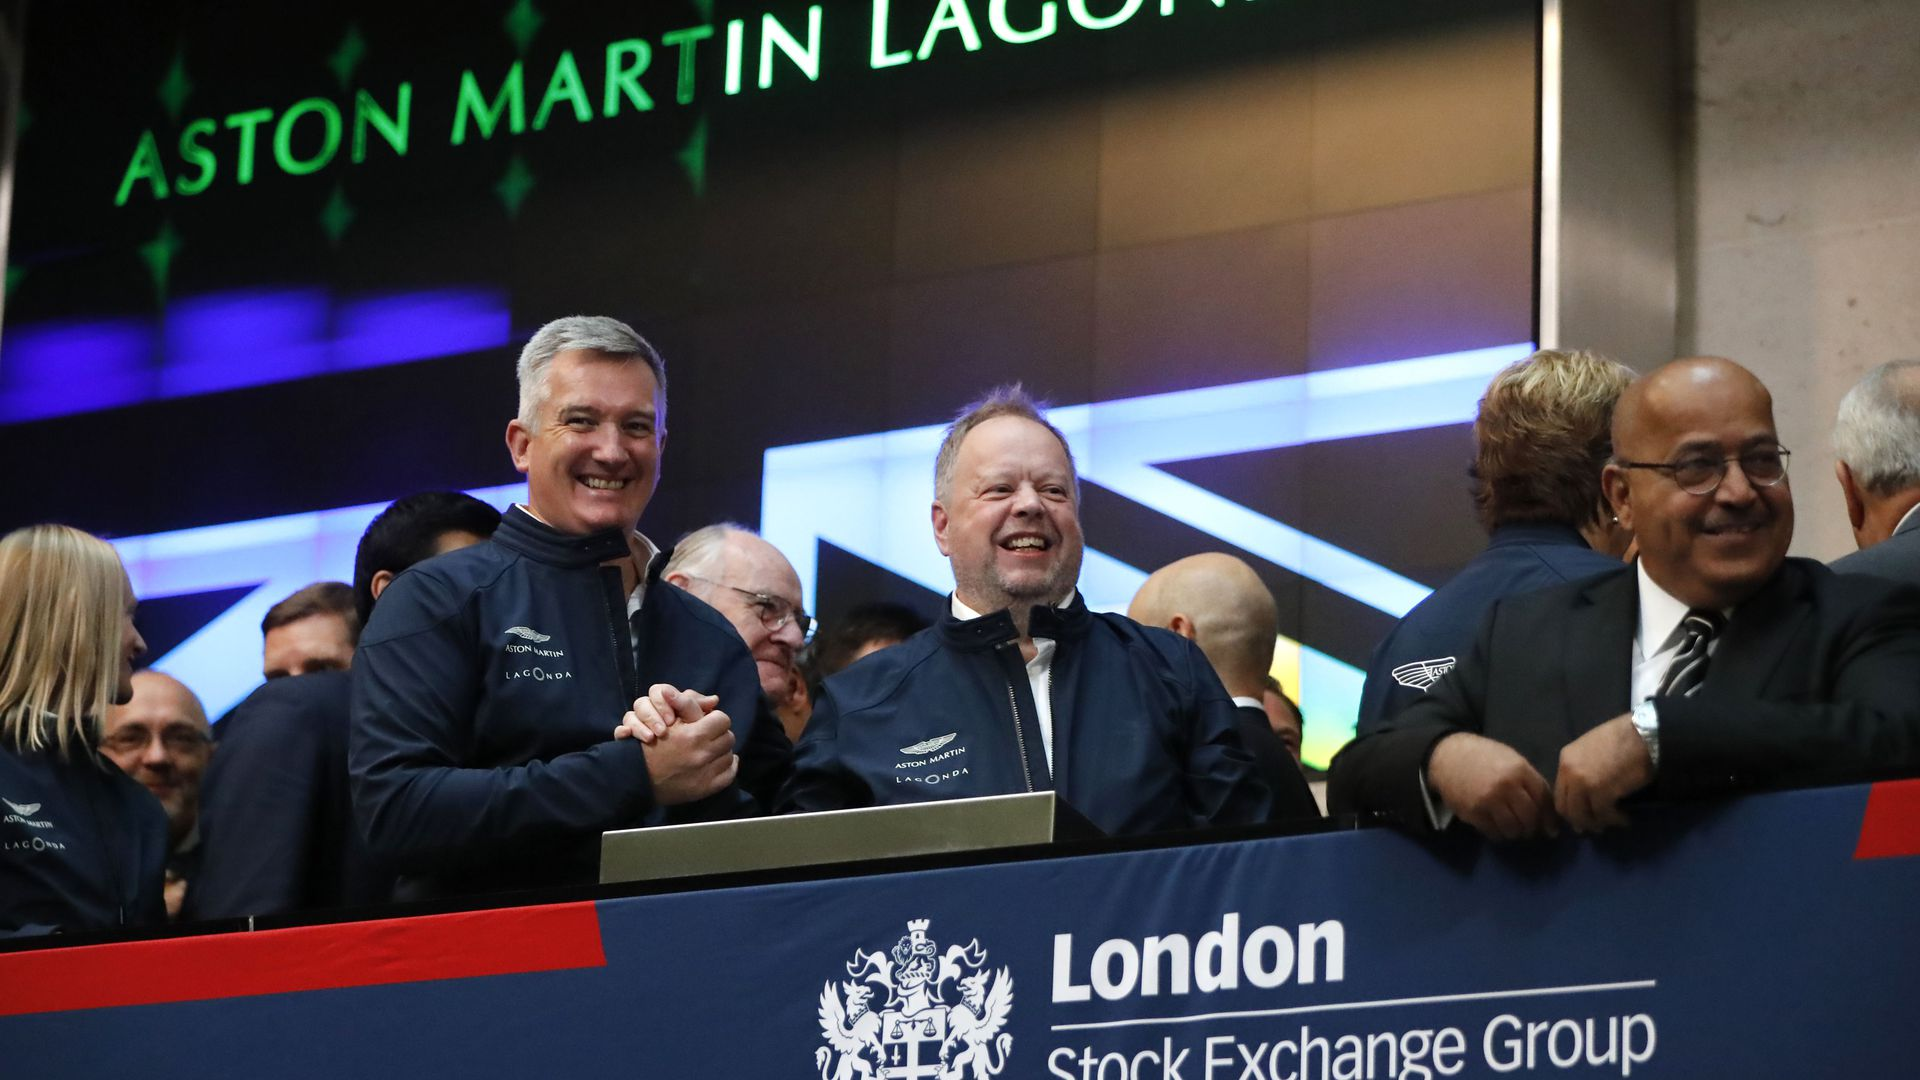 Aston Martin executives celebrate at London Stock Exchange